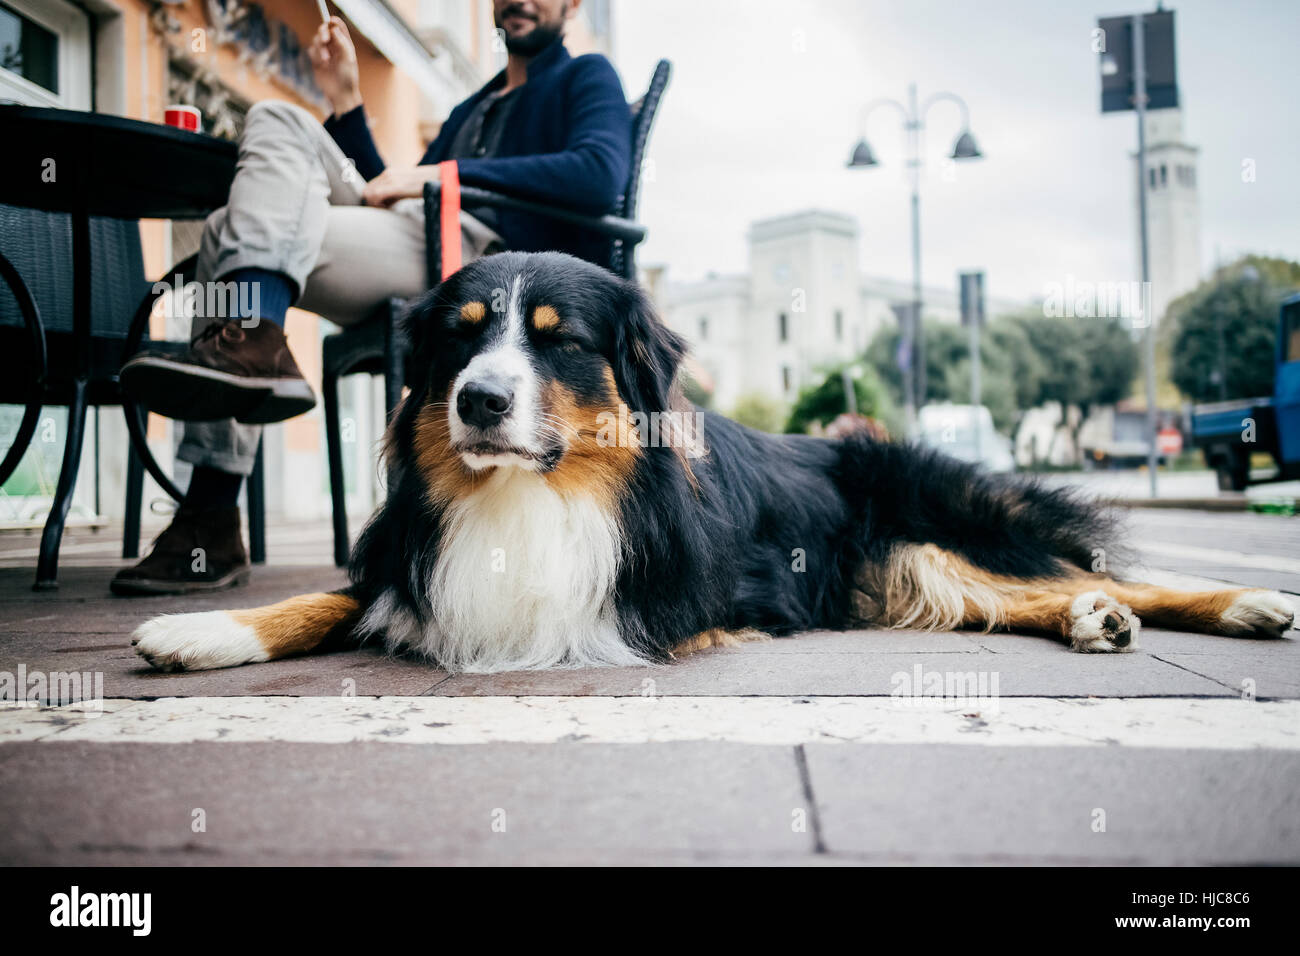 Portrait de chien couché attendant at sidewalk cafe Photo Stock